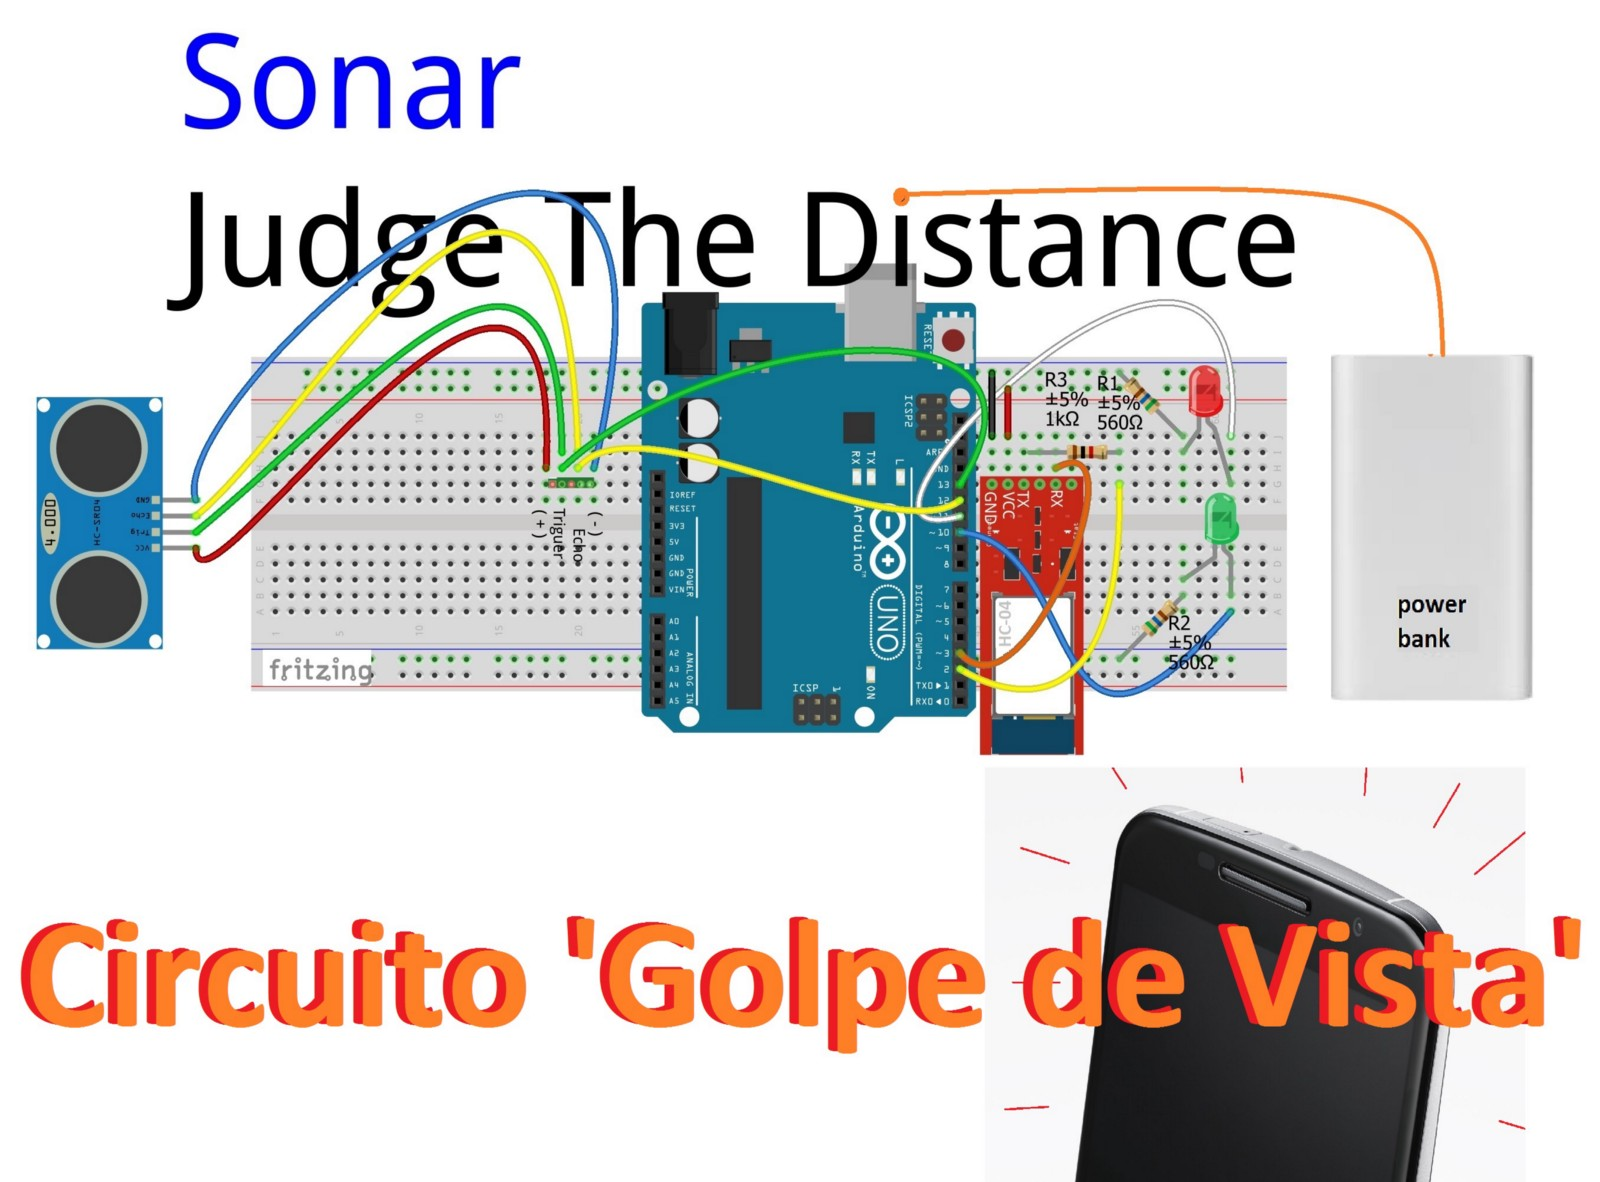 Sonar Wiring Diagrams Judge The Distance Circuit Jungletronics Medium How About That Sound And Vibrate Your Cell There You Are Here Is A Golpe De Vista Solution For Garages Getting Tighter